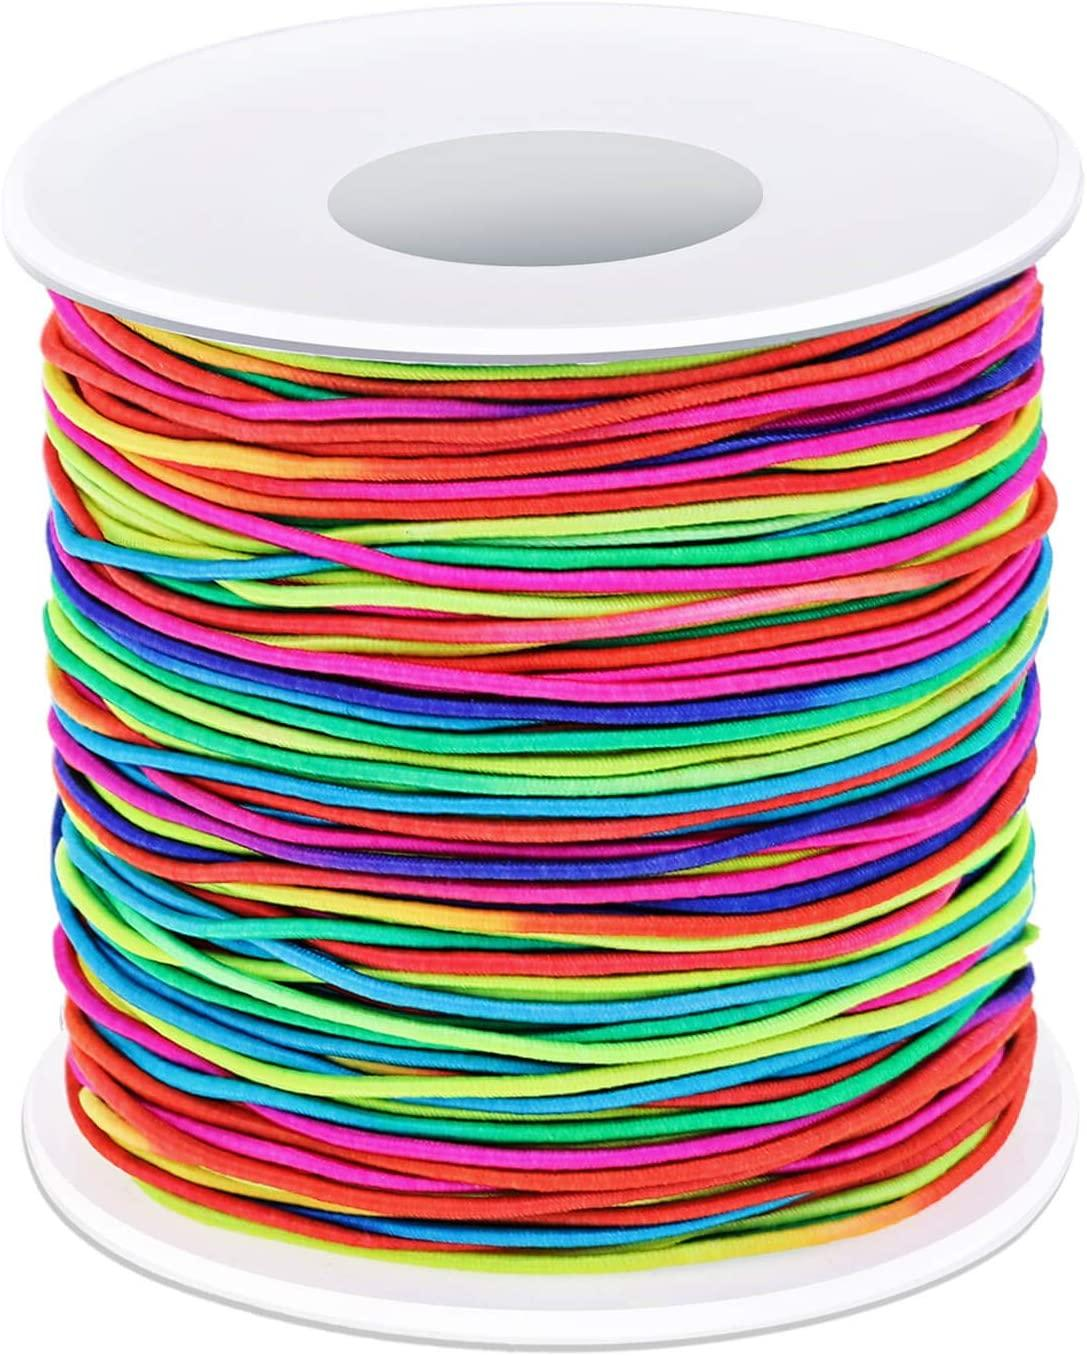 2020 Elastic String For Bracelets Bracelet Bead String Elastic Cord For Bracelets Necklace Beading Jewelry Making And Braided Hair Styling From Happyelesource 7 03 Dhgate Com